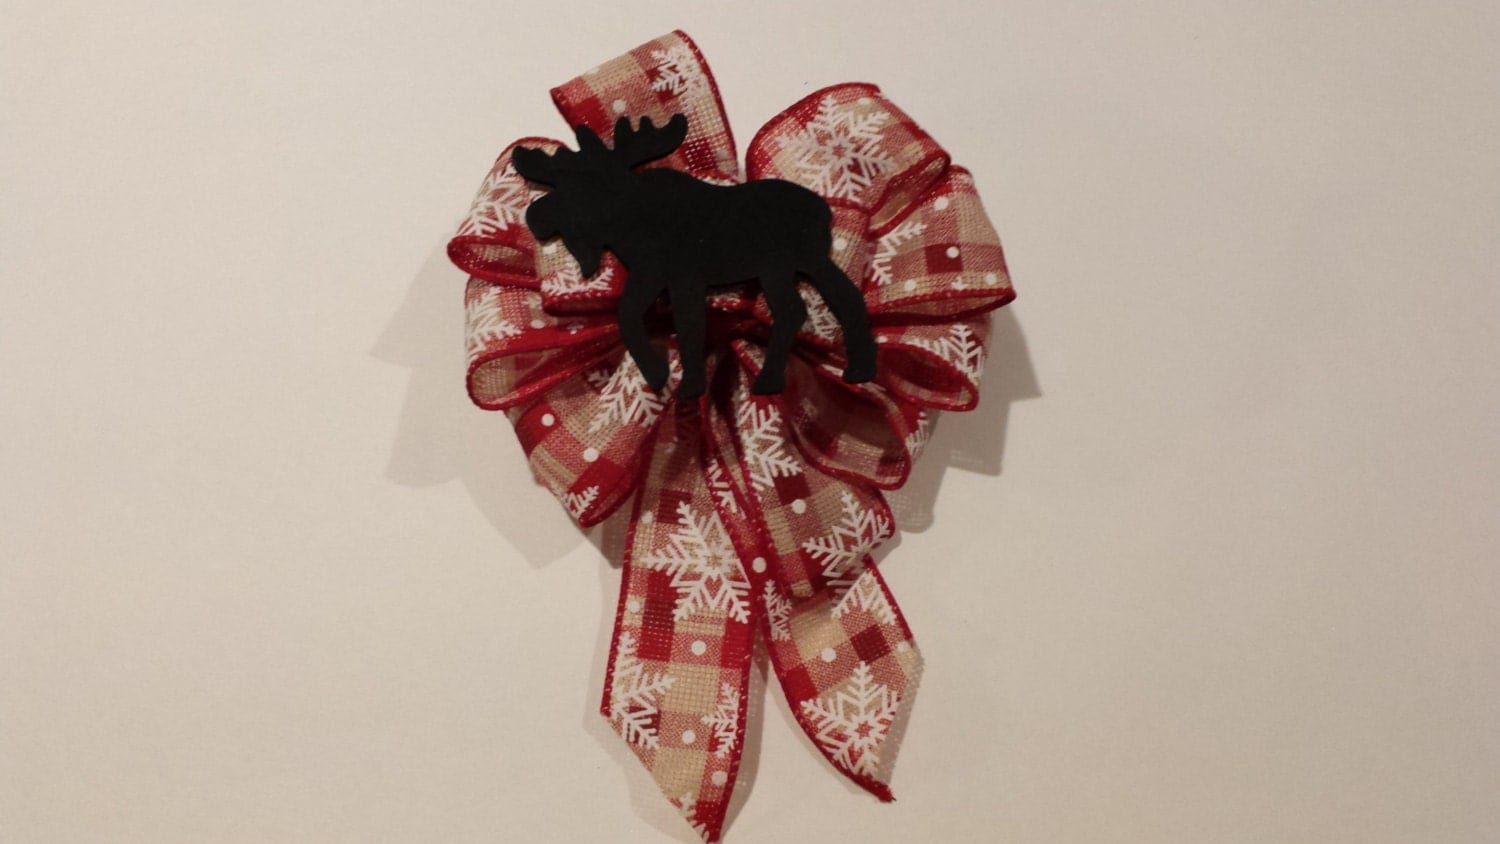 Red Plaid burlap with Snowflakes, & wooden black moose custom Christmas tree or wreath wired ribbon bow